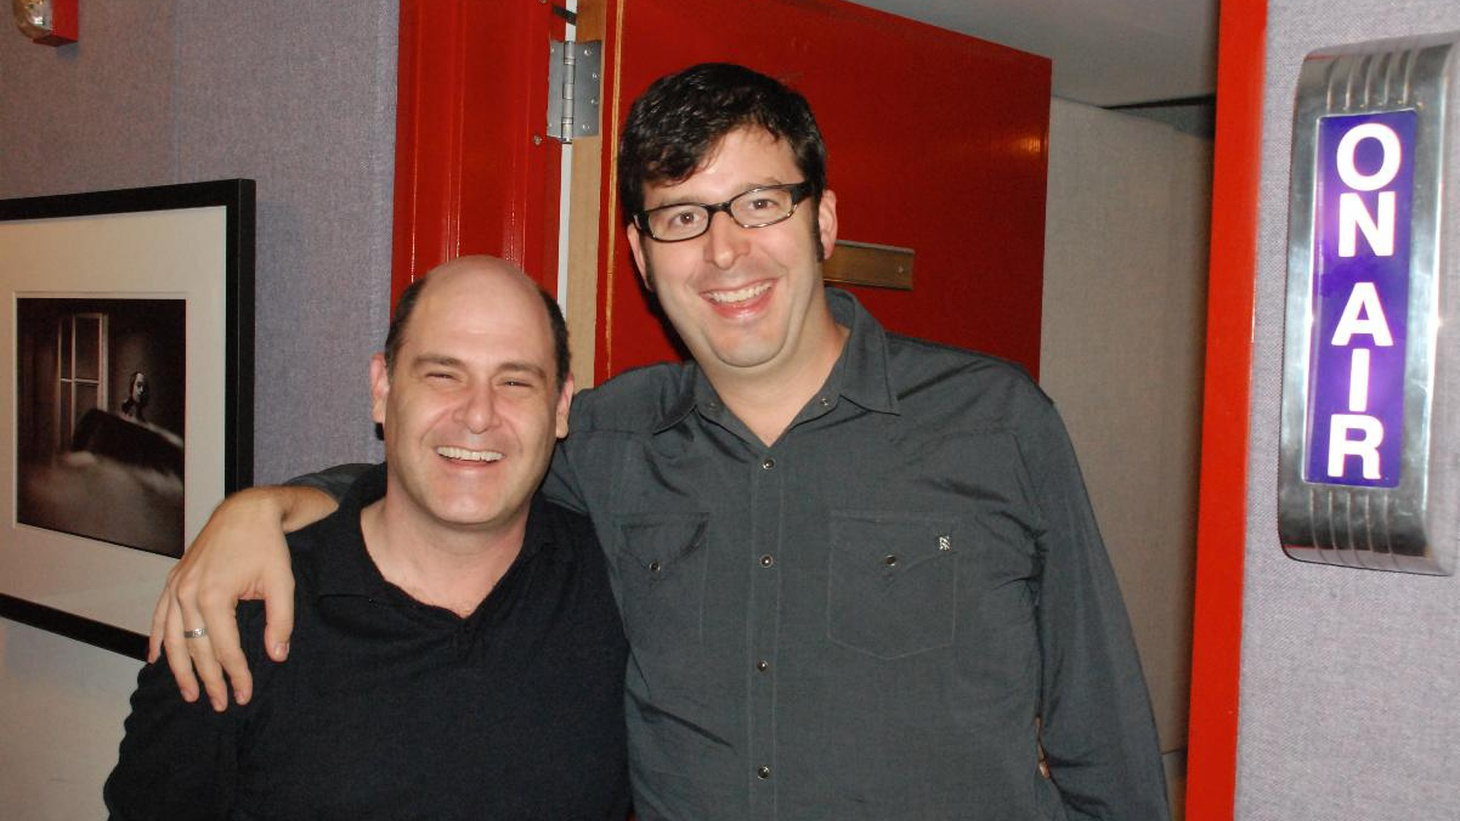 Mad Men creator Matthew Weiner has a theme for his Guest DJ set -- anthems about staying true to yourself, made by artists who followed that creed, from Big Star to Bing Crosby. He also lovingly devotes songs to the two cities that have shaped him creatively -- New York and LA. Season 4 of the AMC drama Mad Men is now available on DVD.